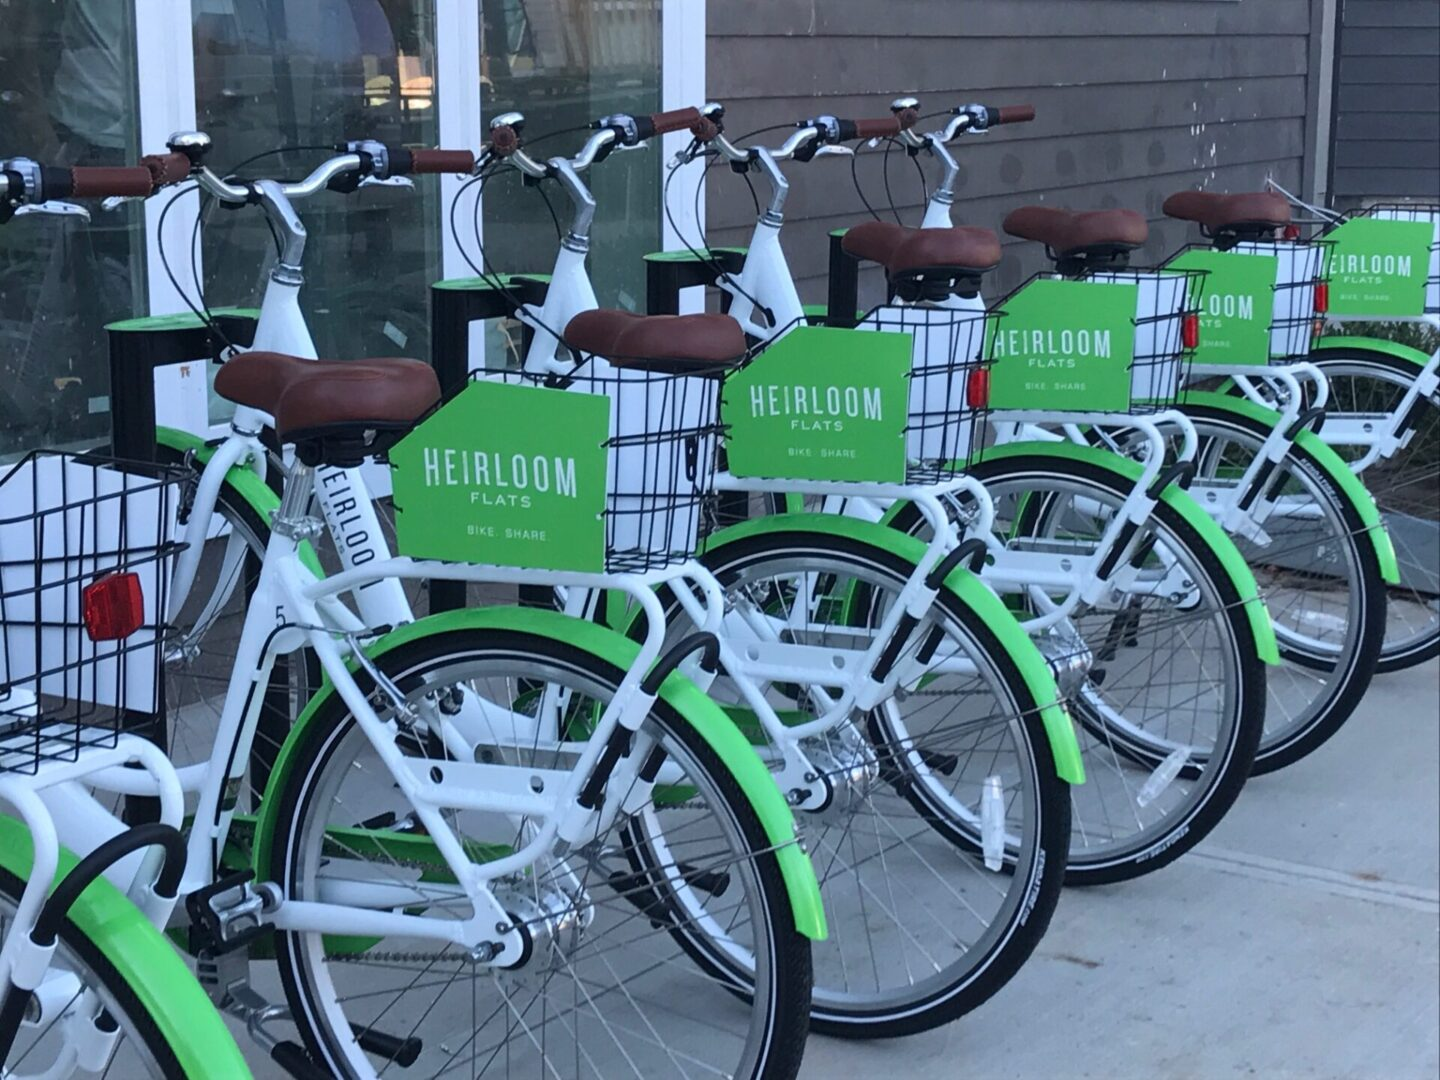 On Bike Share system - bikes at station